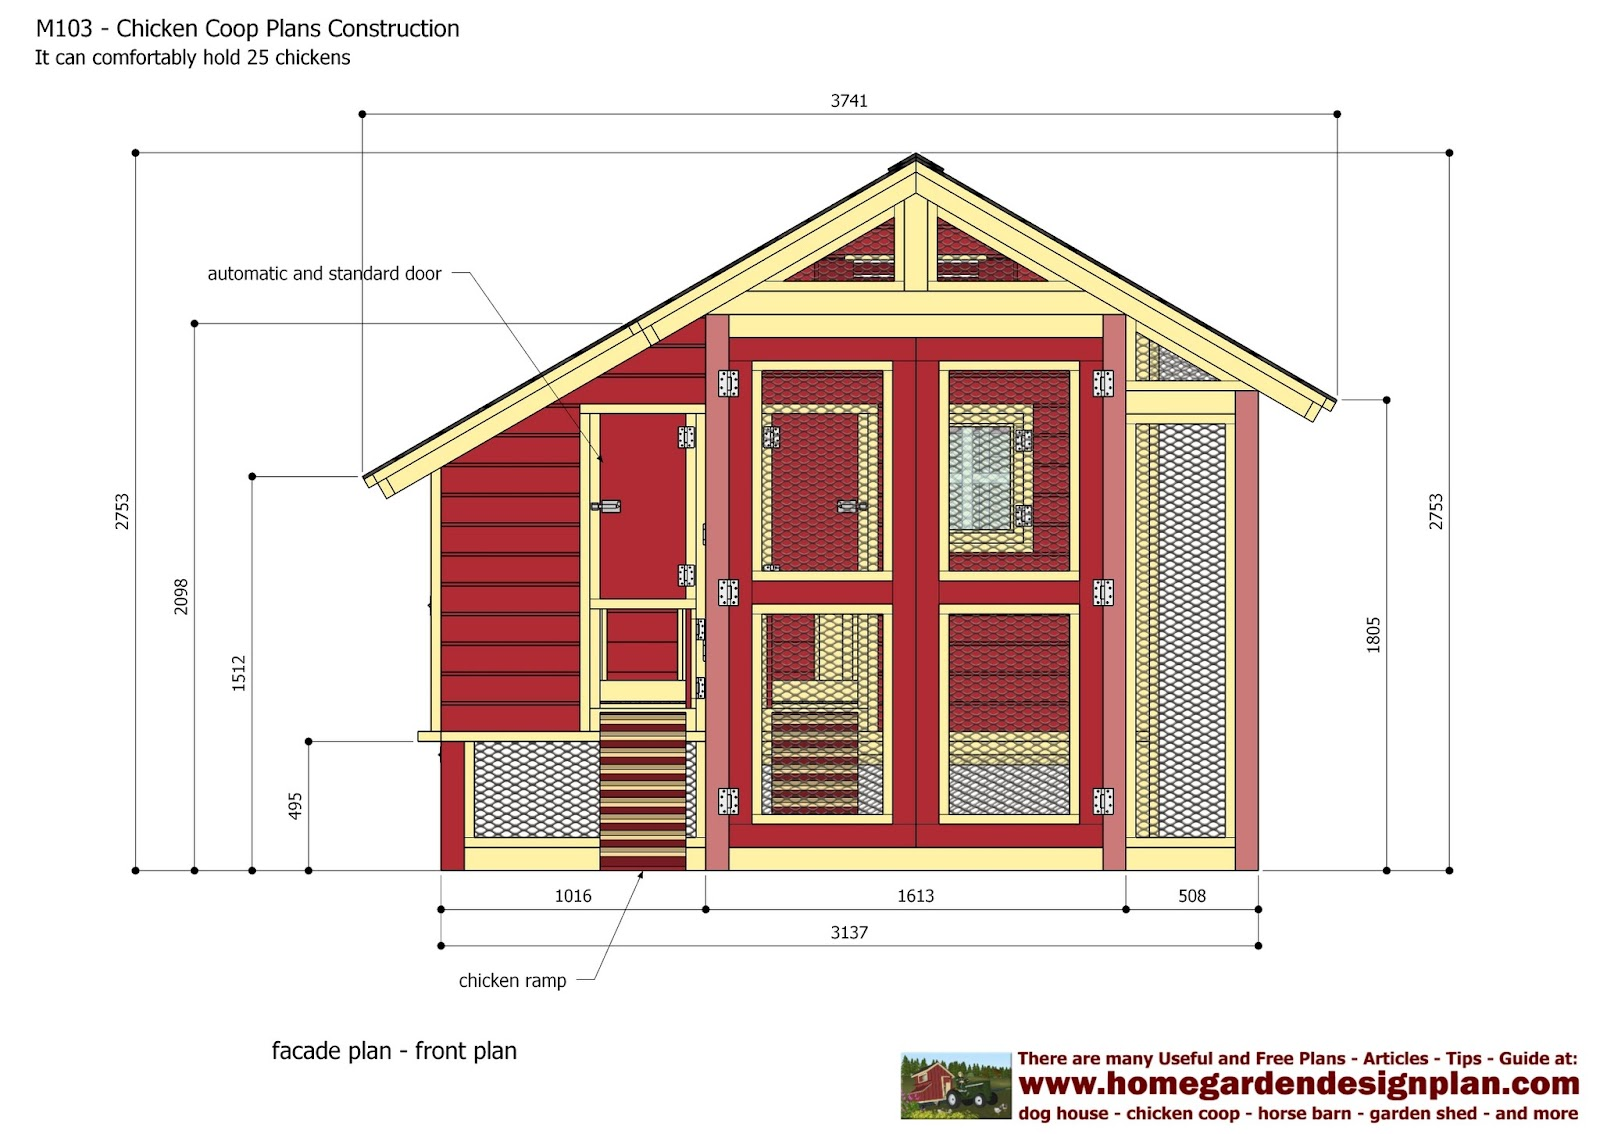 Home garden plans m103 chicken coop plans construction for Free chicken plans